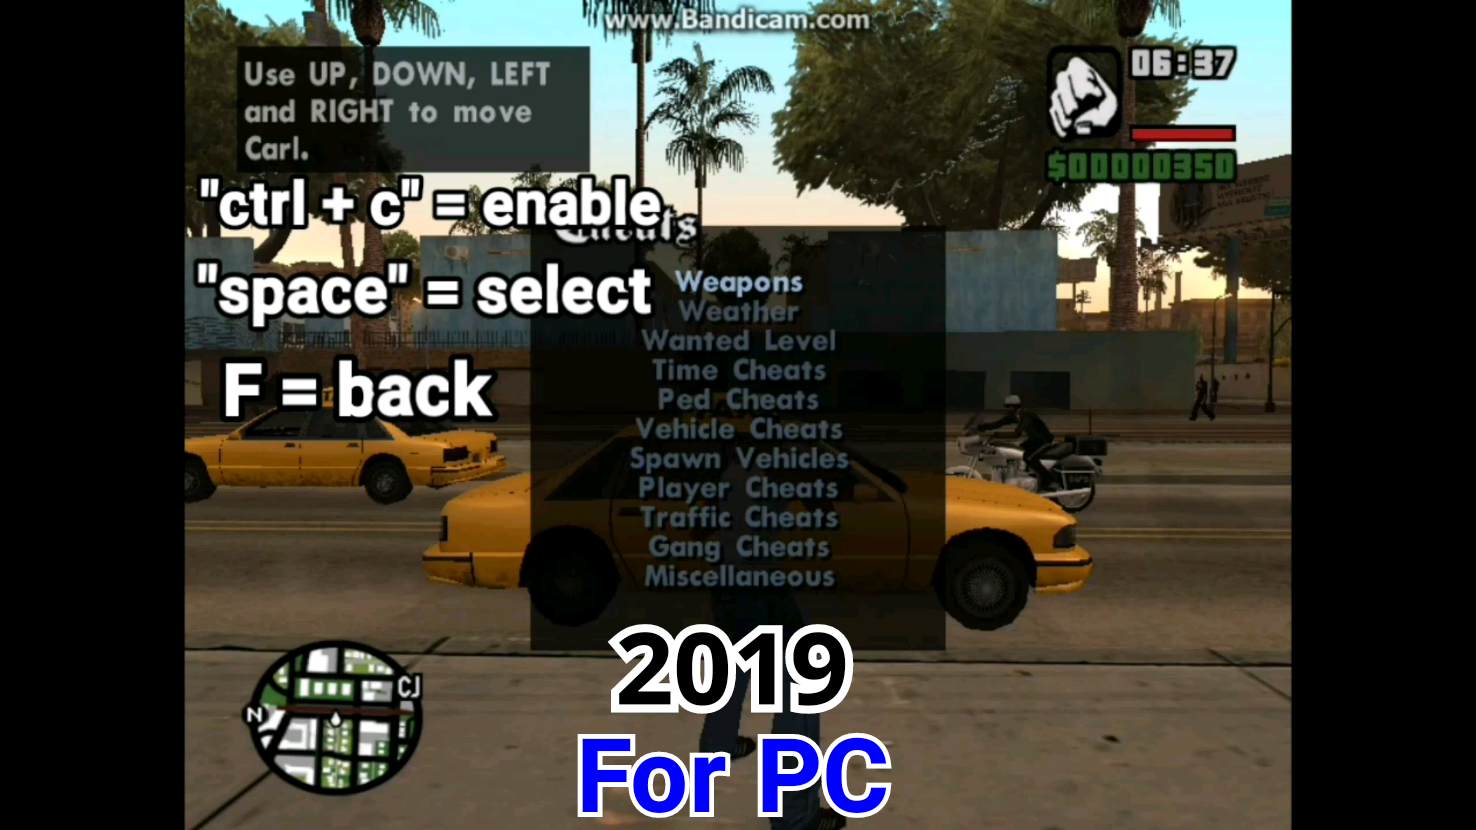 How To Install Cleo Mod in Gta San Andreas For Pc ~ Hyper gamer